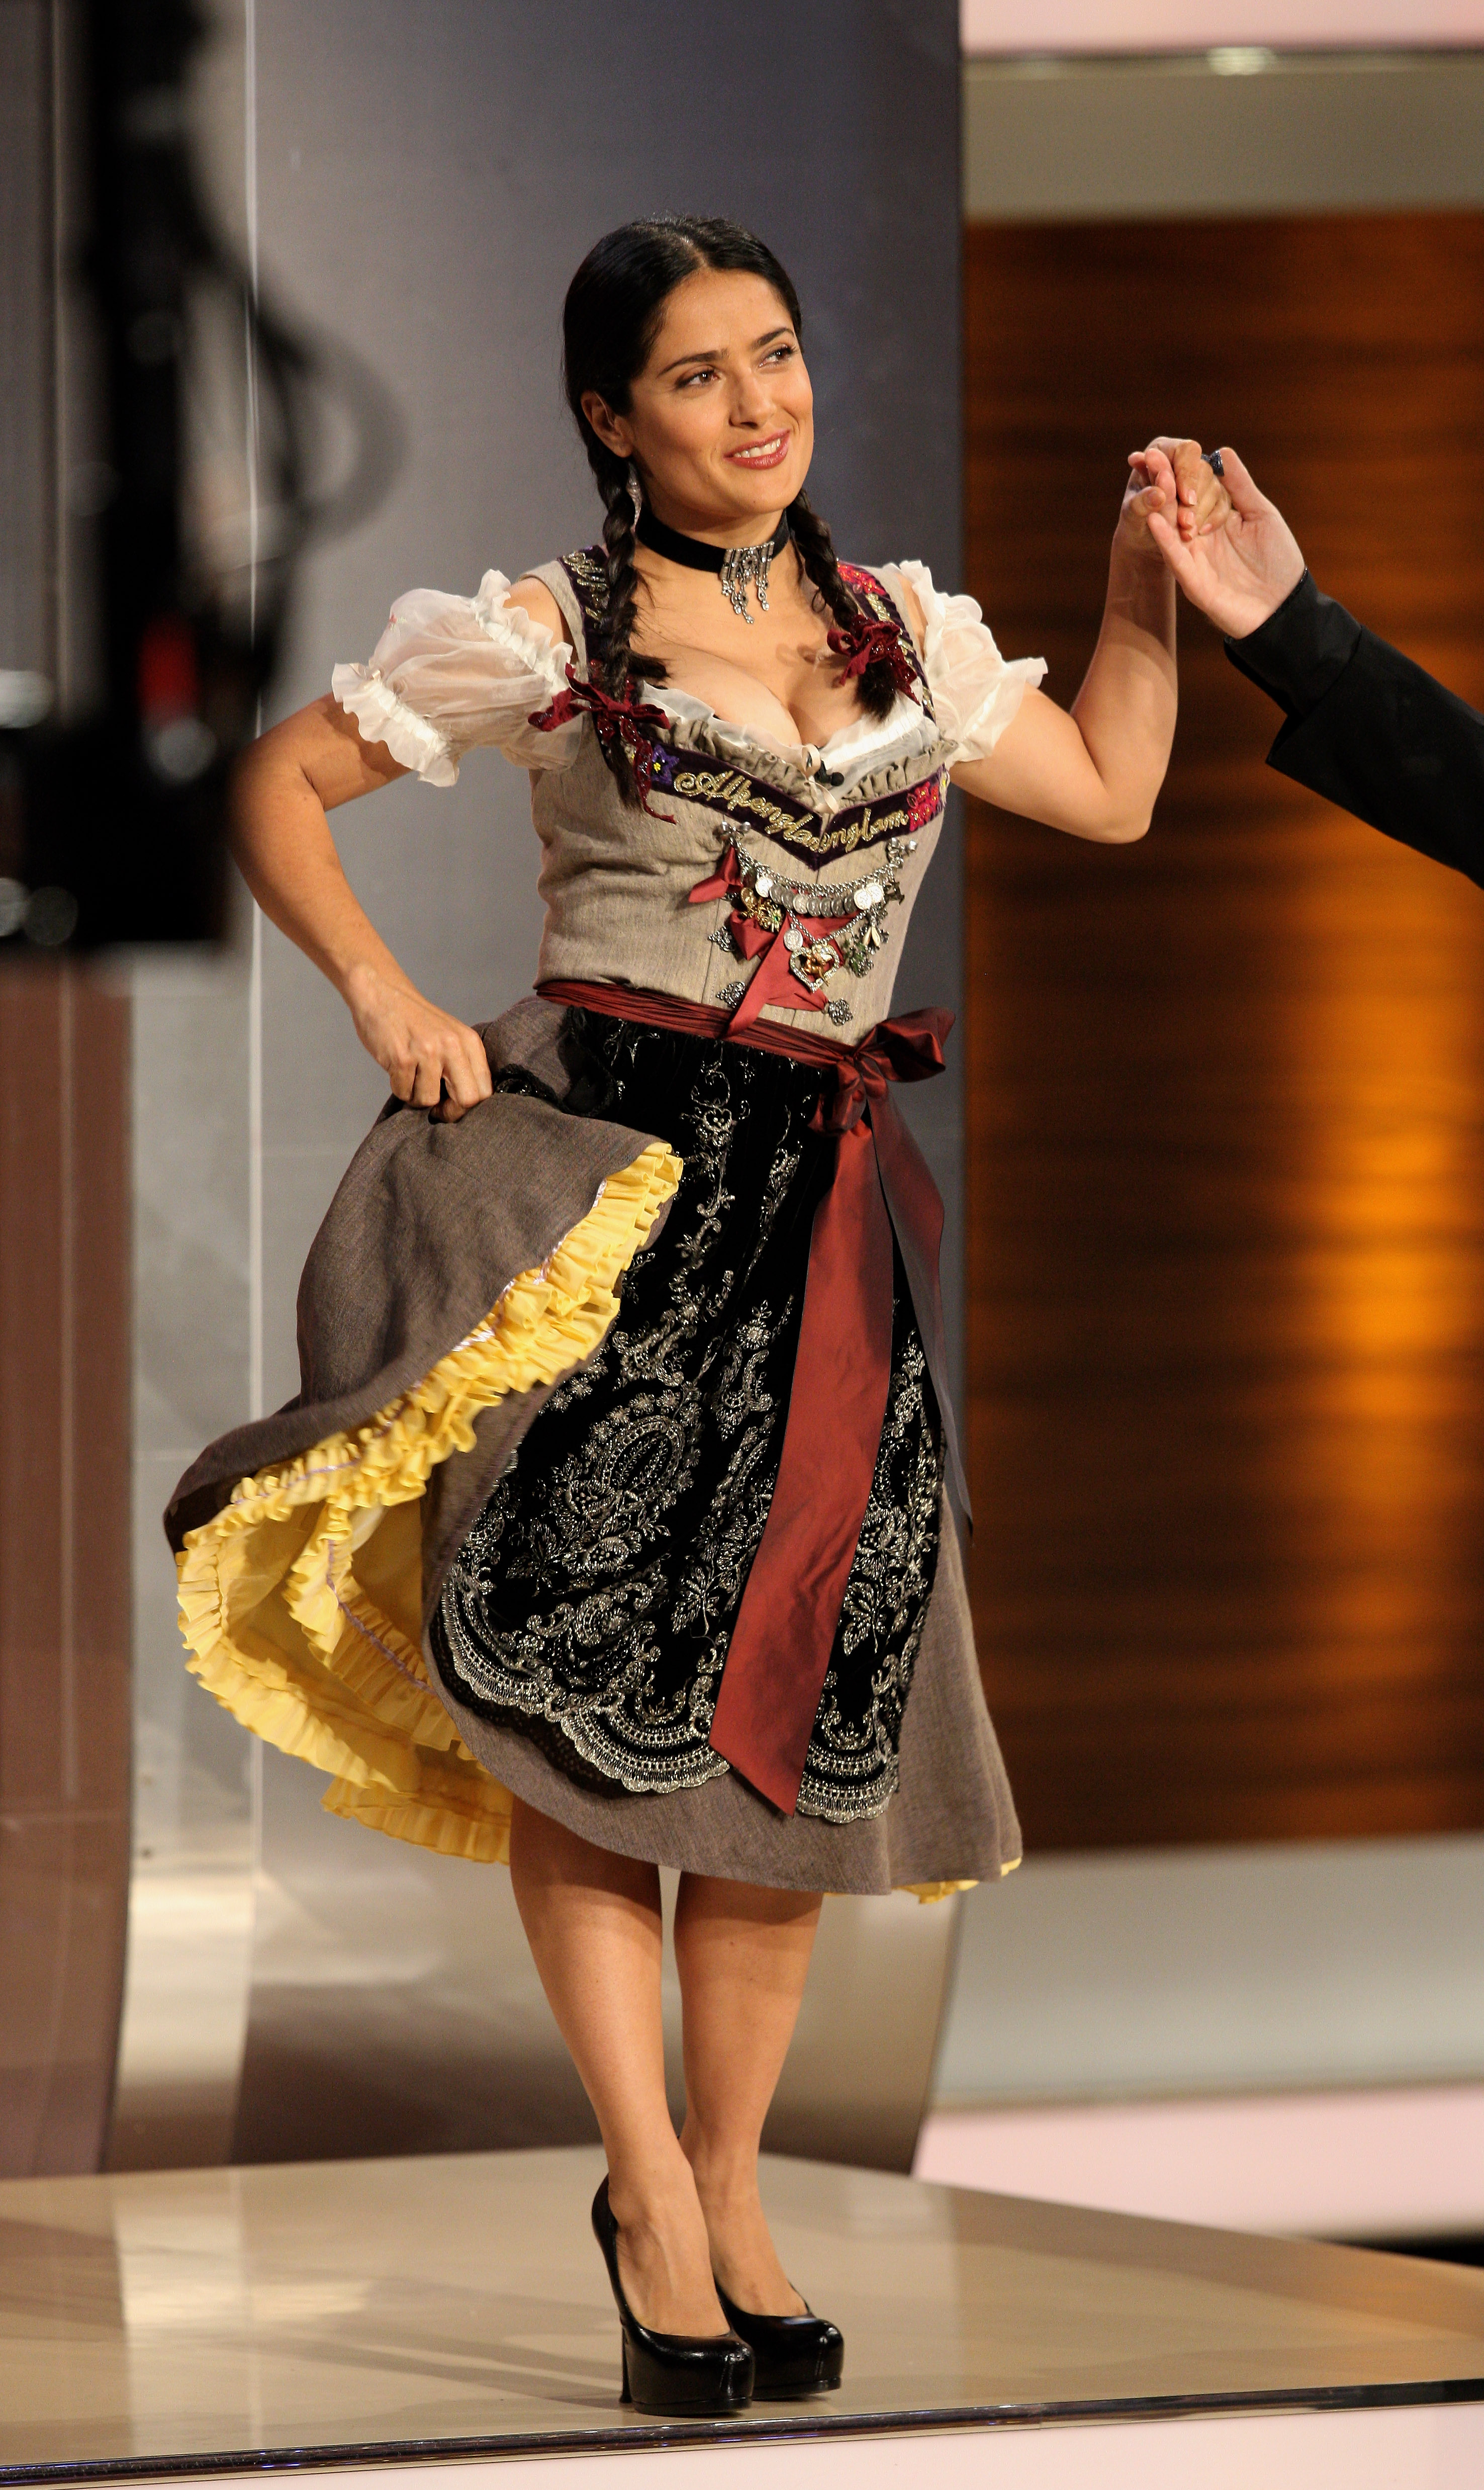 salma hayek ein prosit auf die sch nsten dirndl der. Black Bedroom Furniture Sets. Home Design Ideas